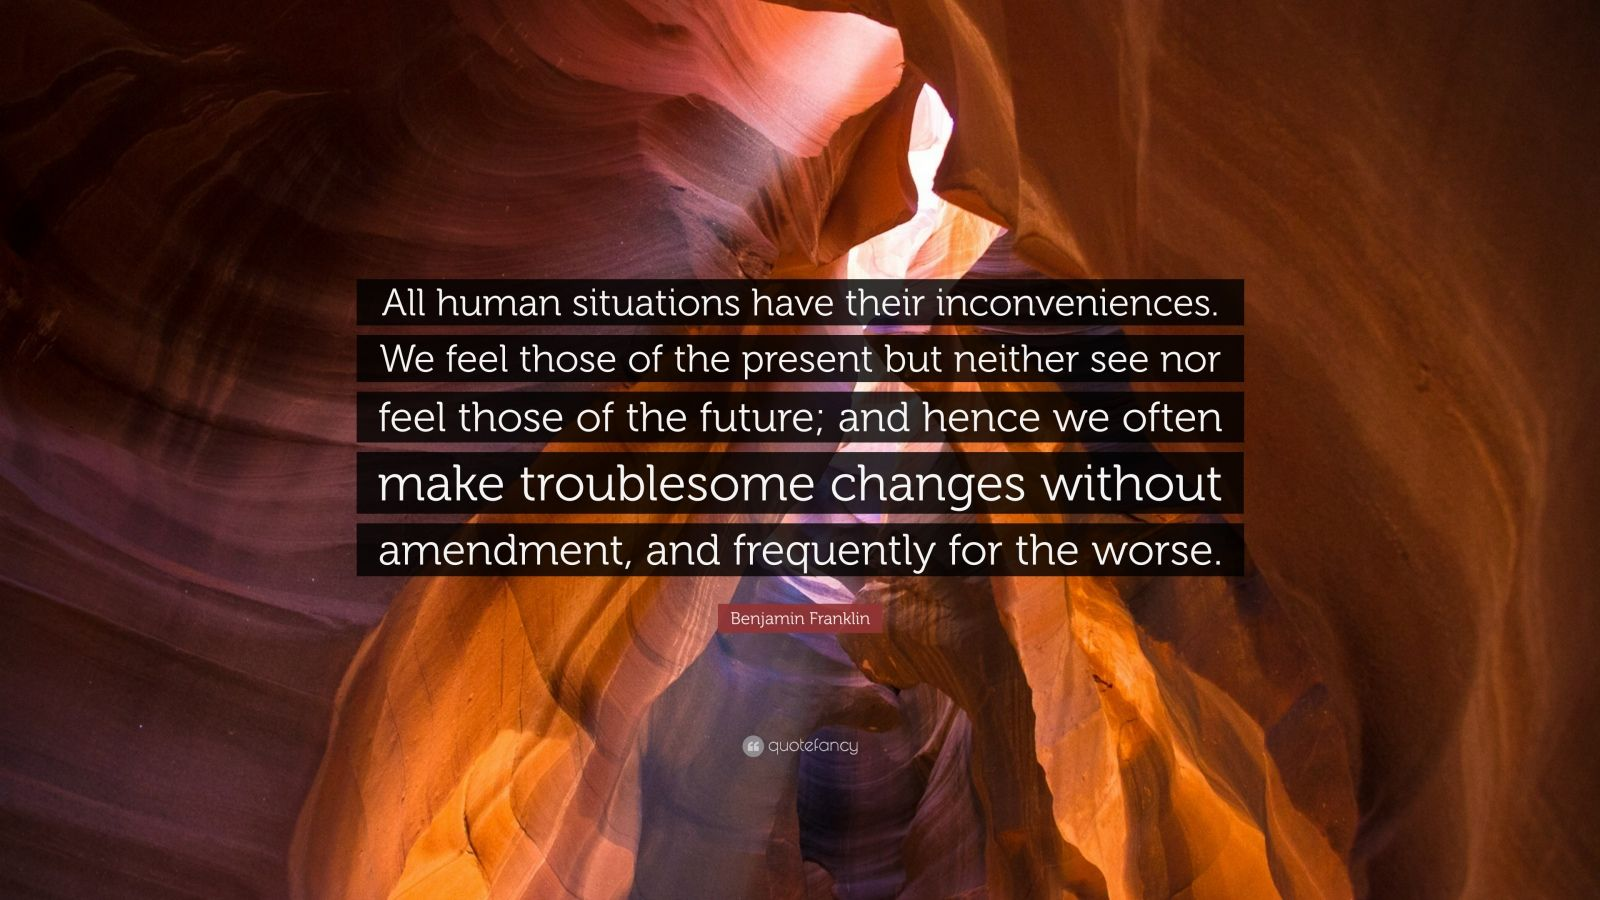 """Benjamin Franklin Quote: """"All human situations have their inconveniences. We feel those of the present but neither see nor feel those of the future; and hence we often make troublesome changes without amendment, and frequently for the worse."""""""